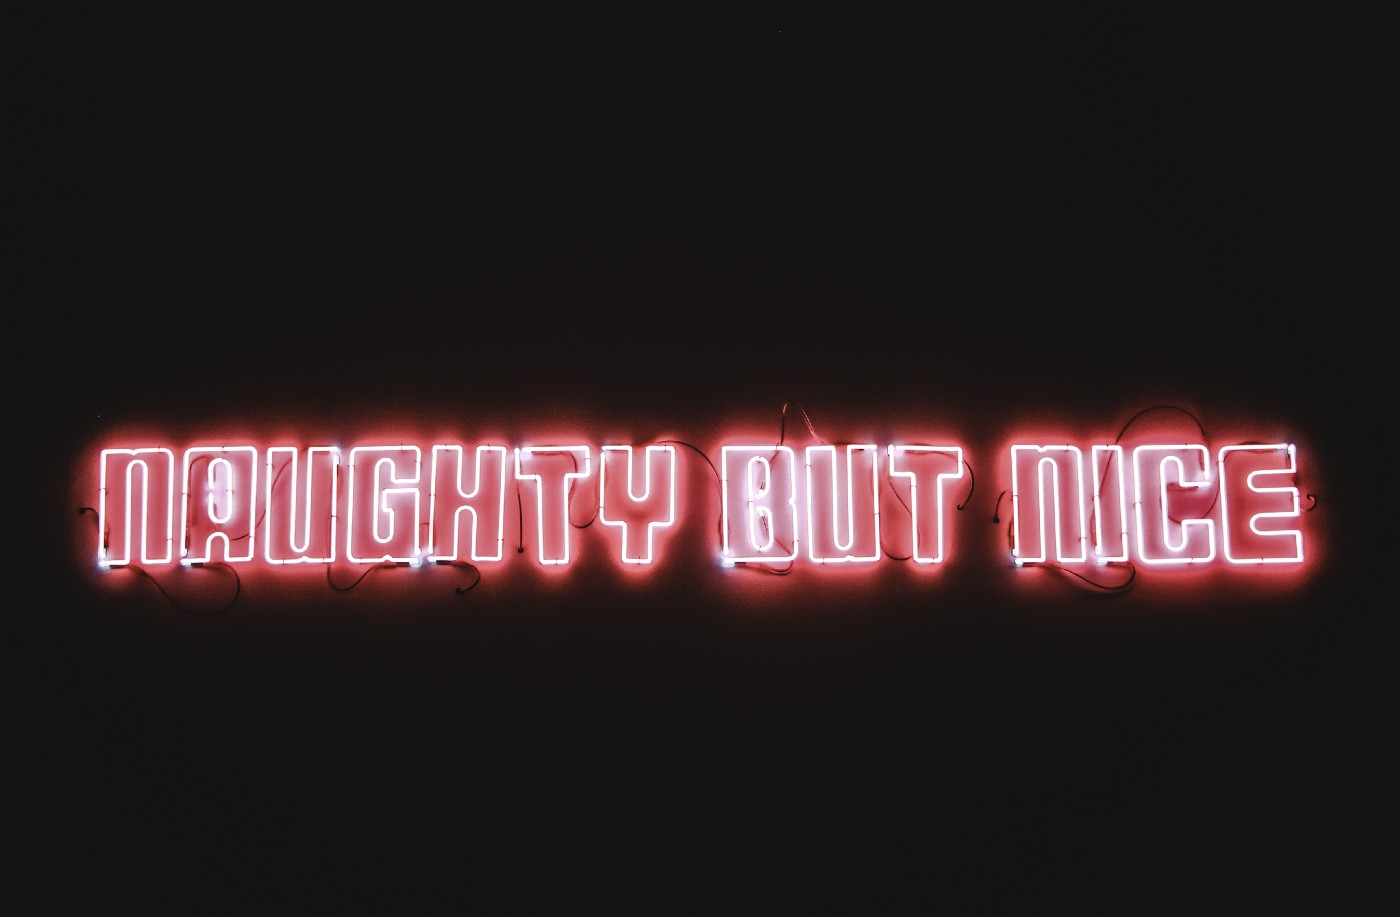 'NAUGHTY BUT NICE' in red and white neon lights